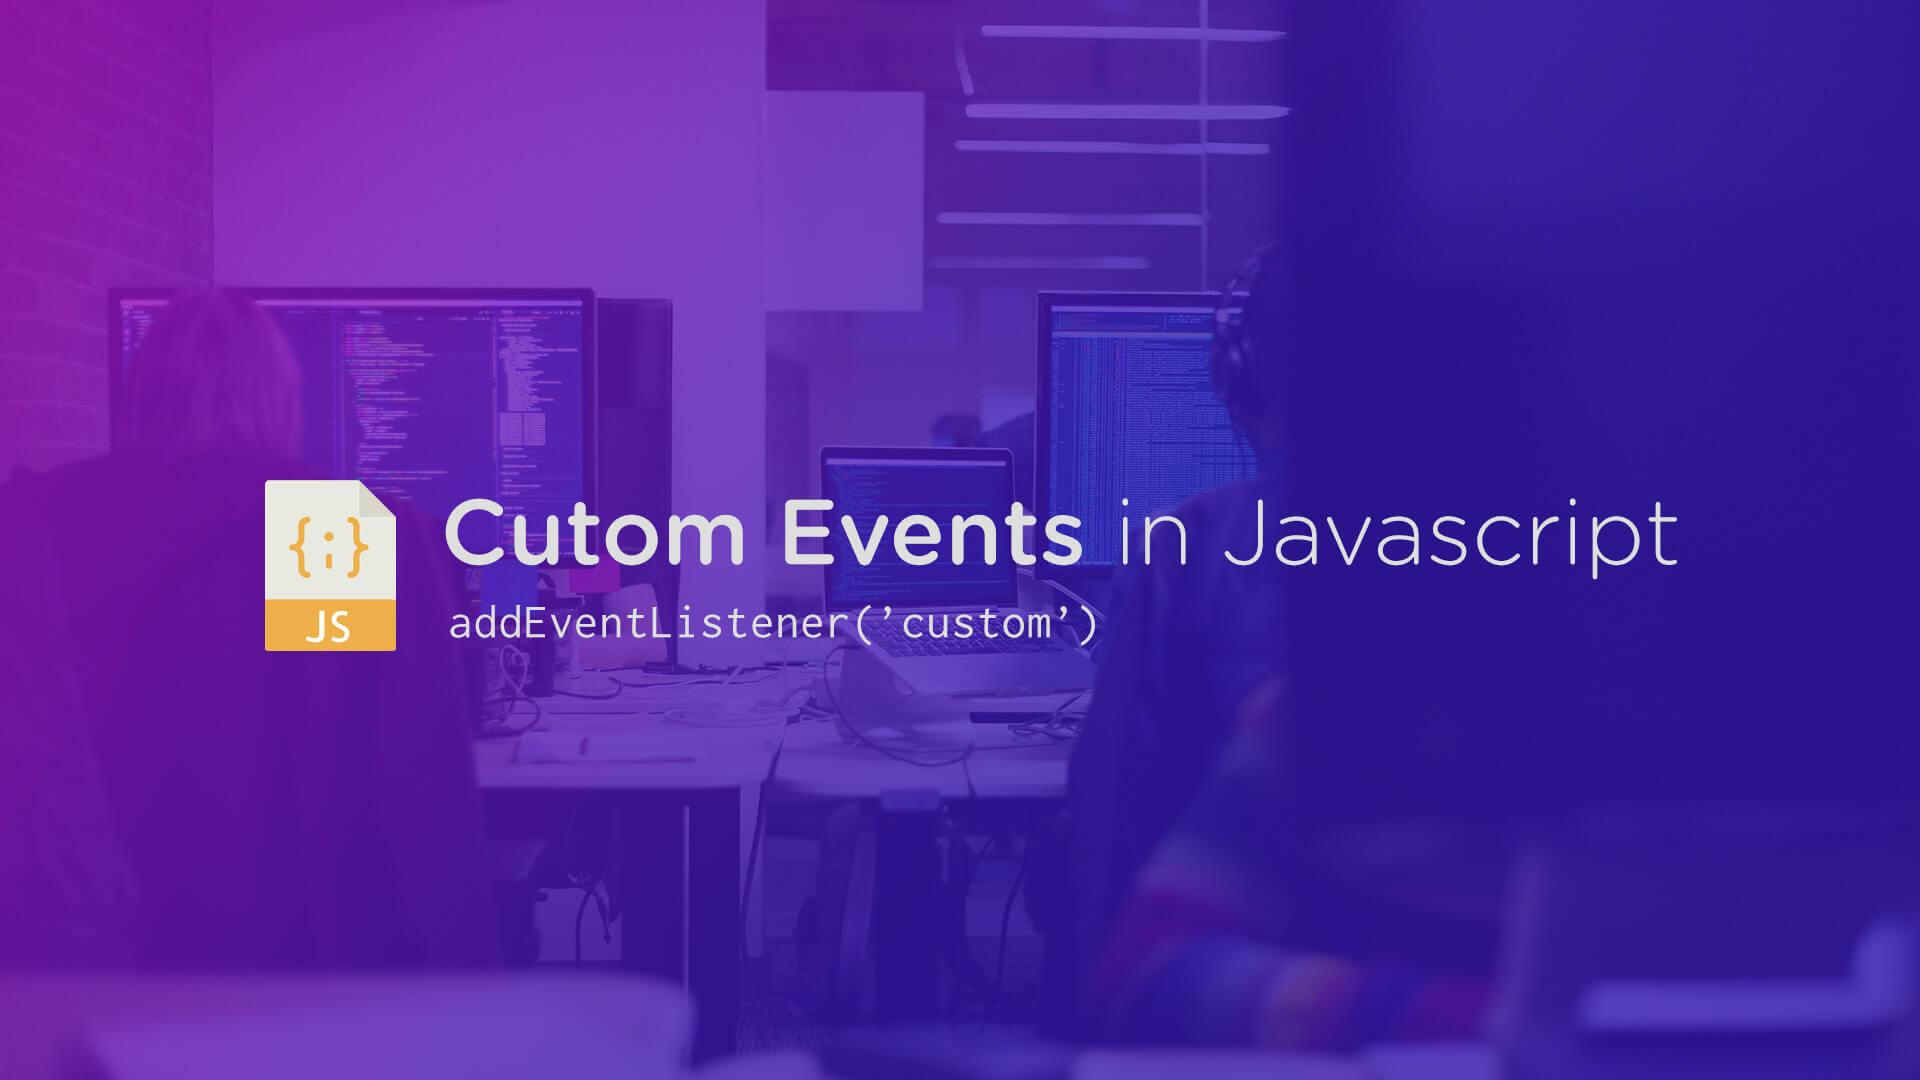 Creating a Custom Event in Javascript